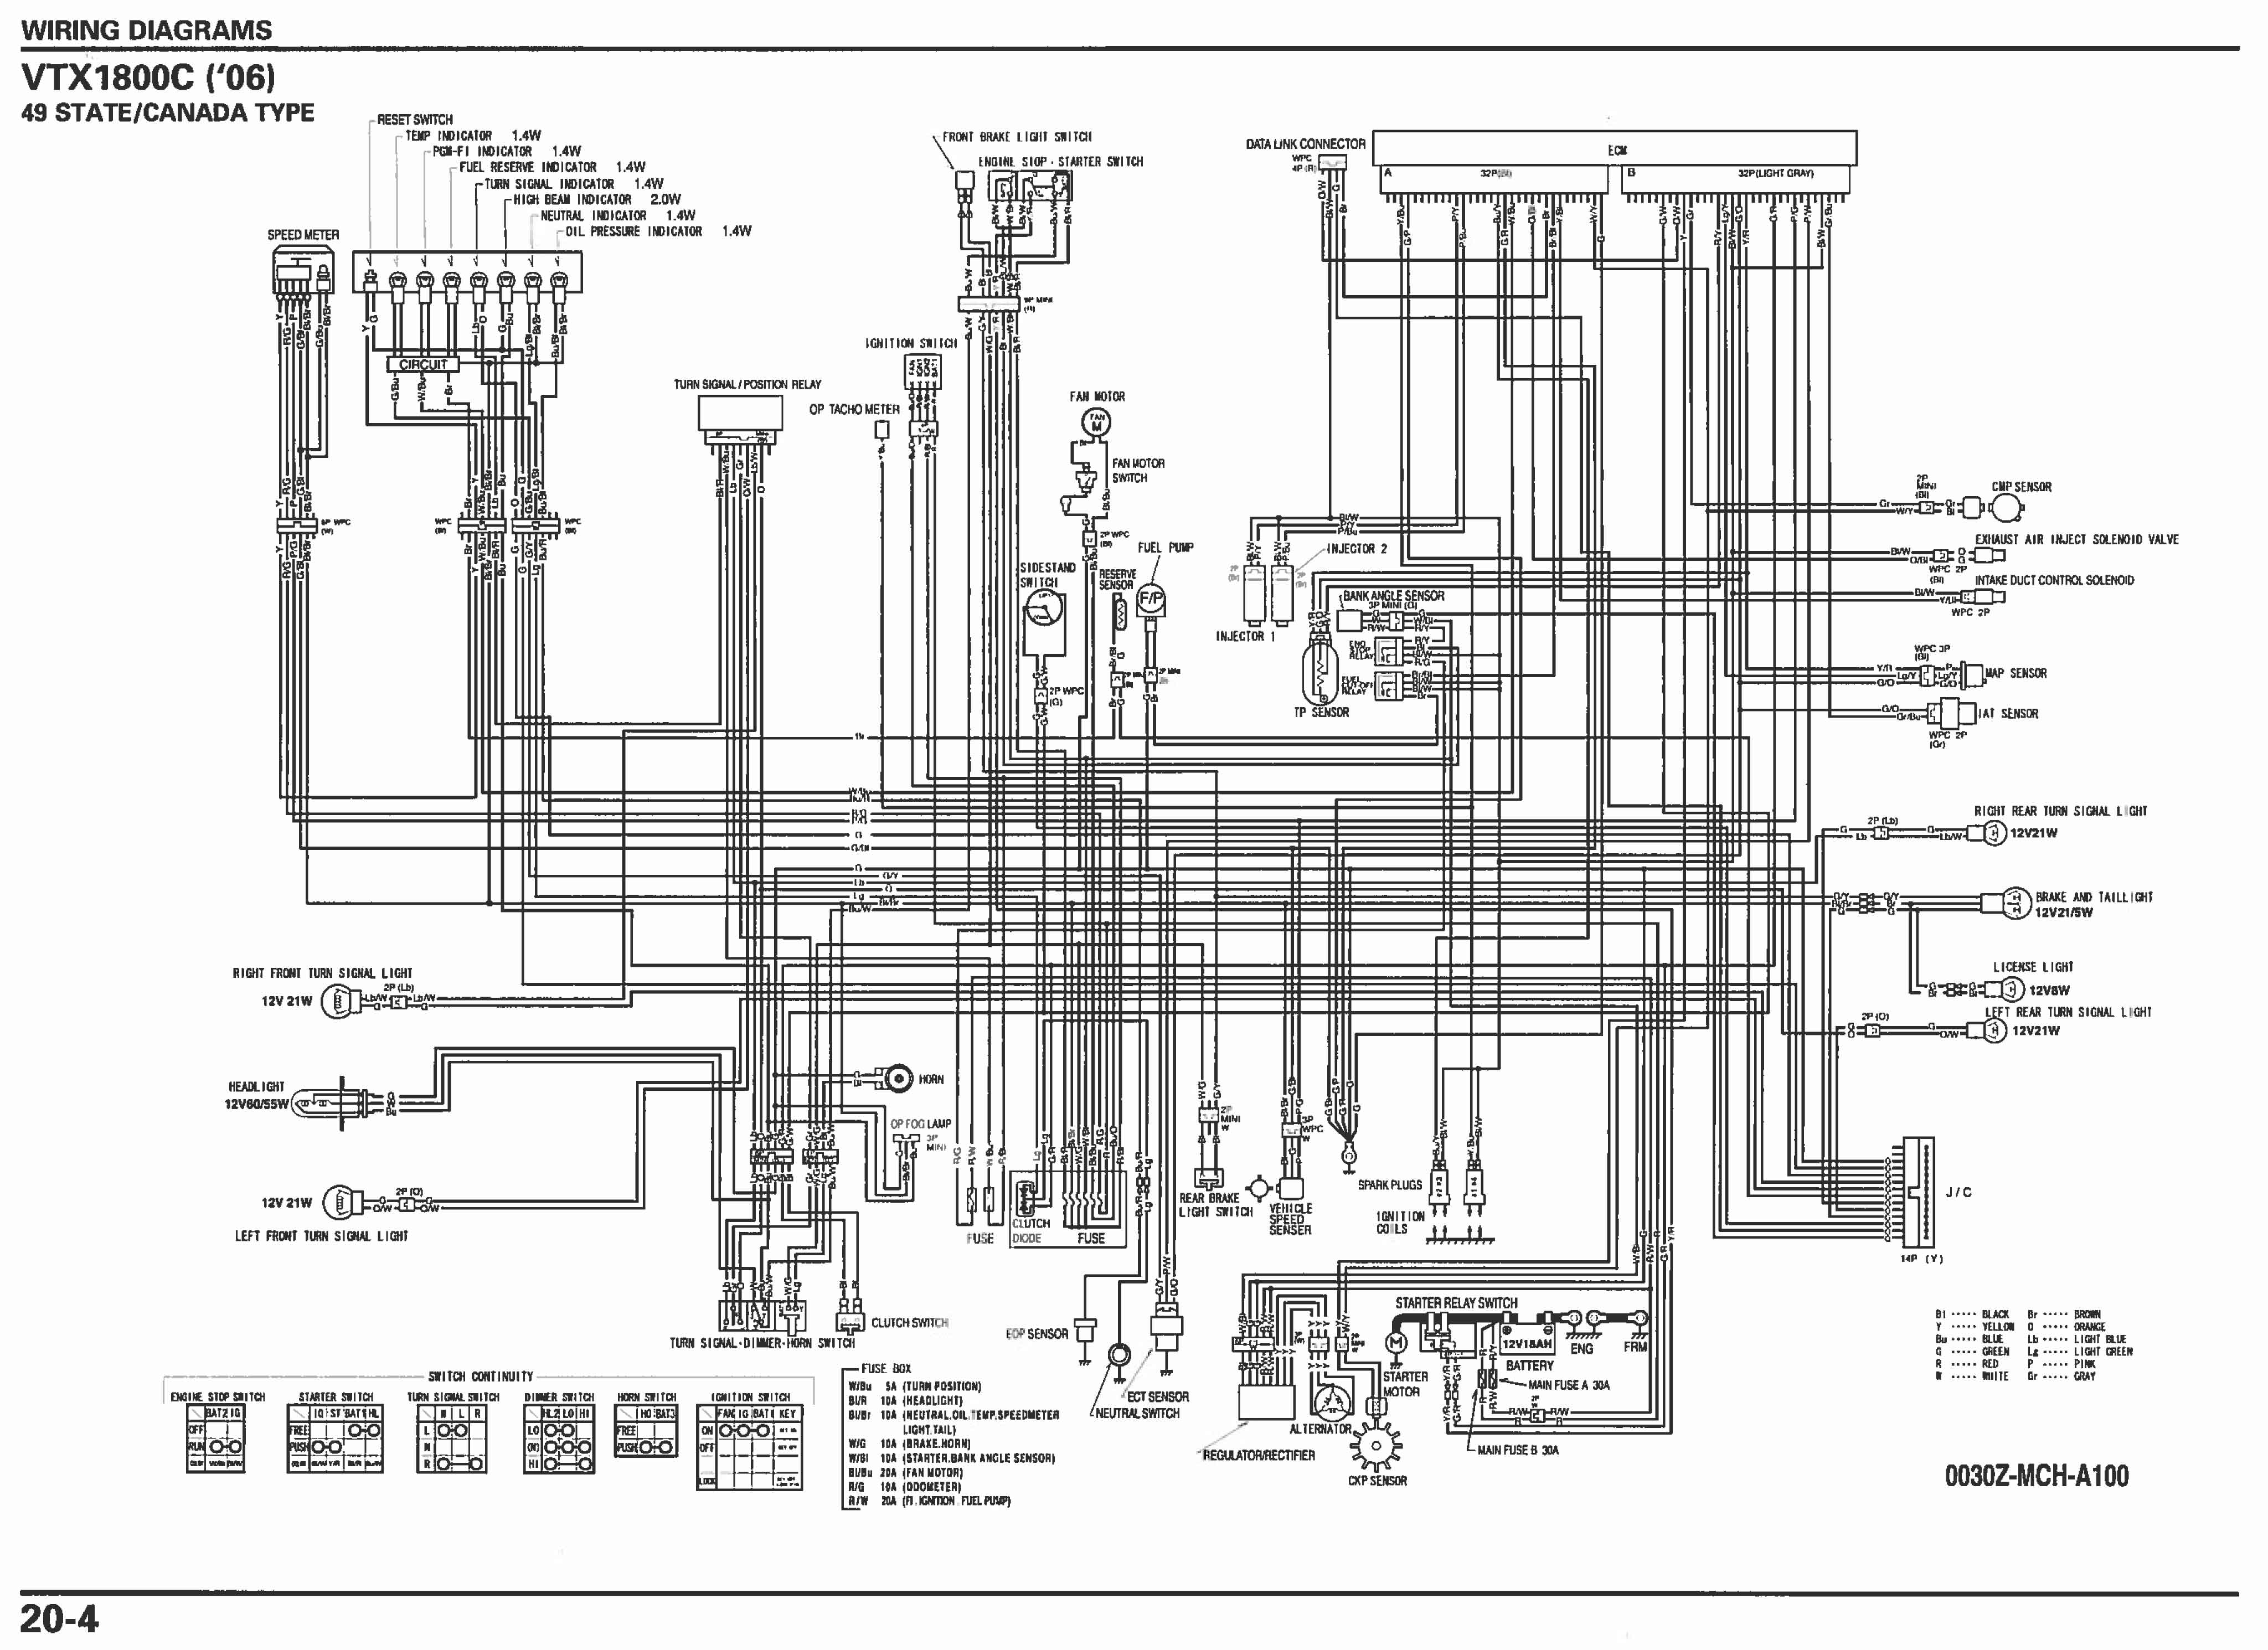 06+_VTX1800_C_schematic motorcycle wire schematics bareass choppers motorcycle tech pages wiring diagram for victory motorcycles at fashall.co